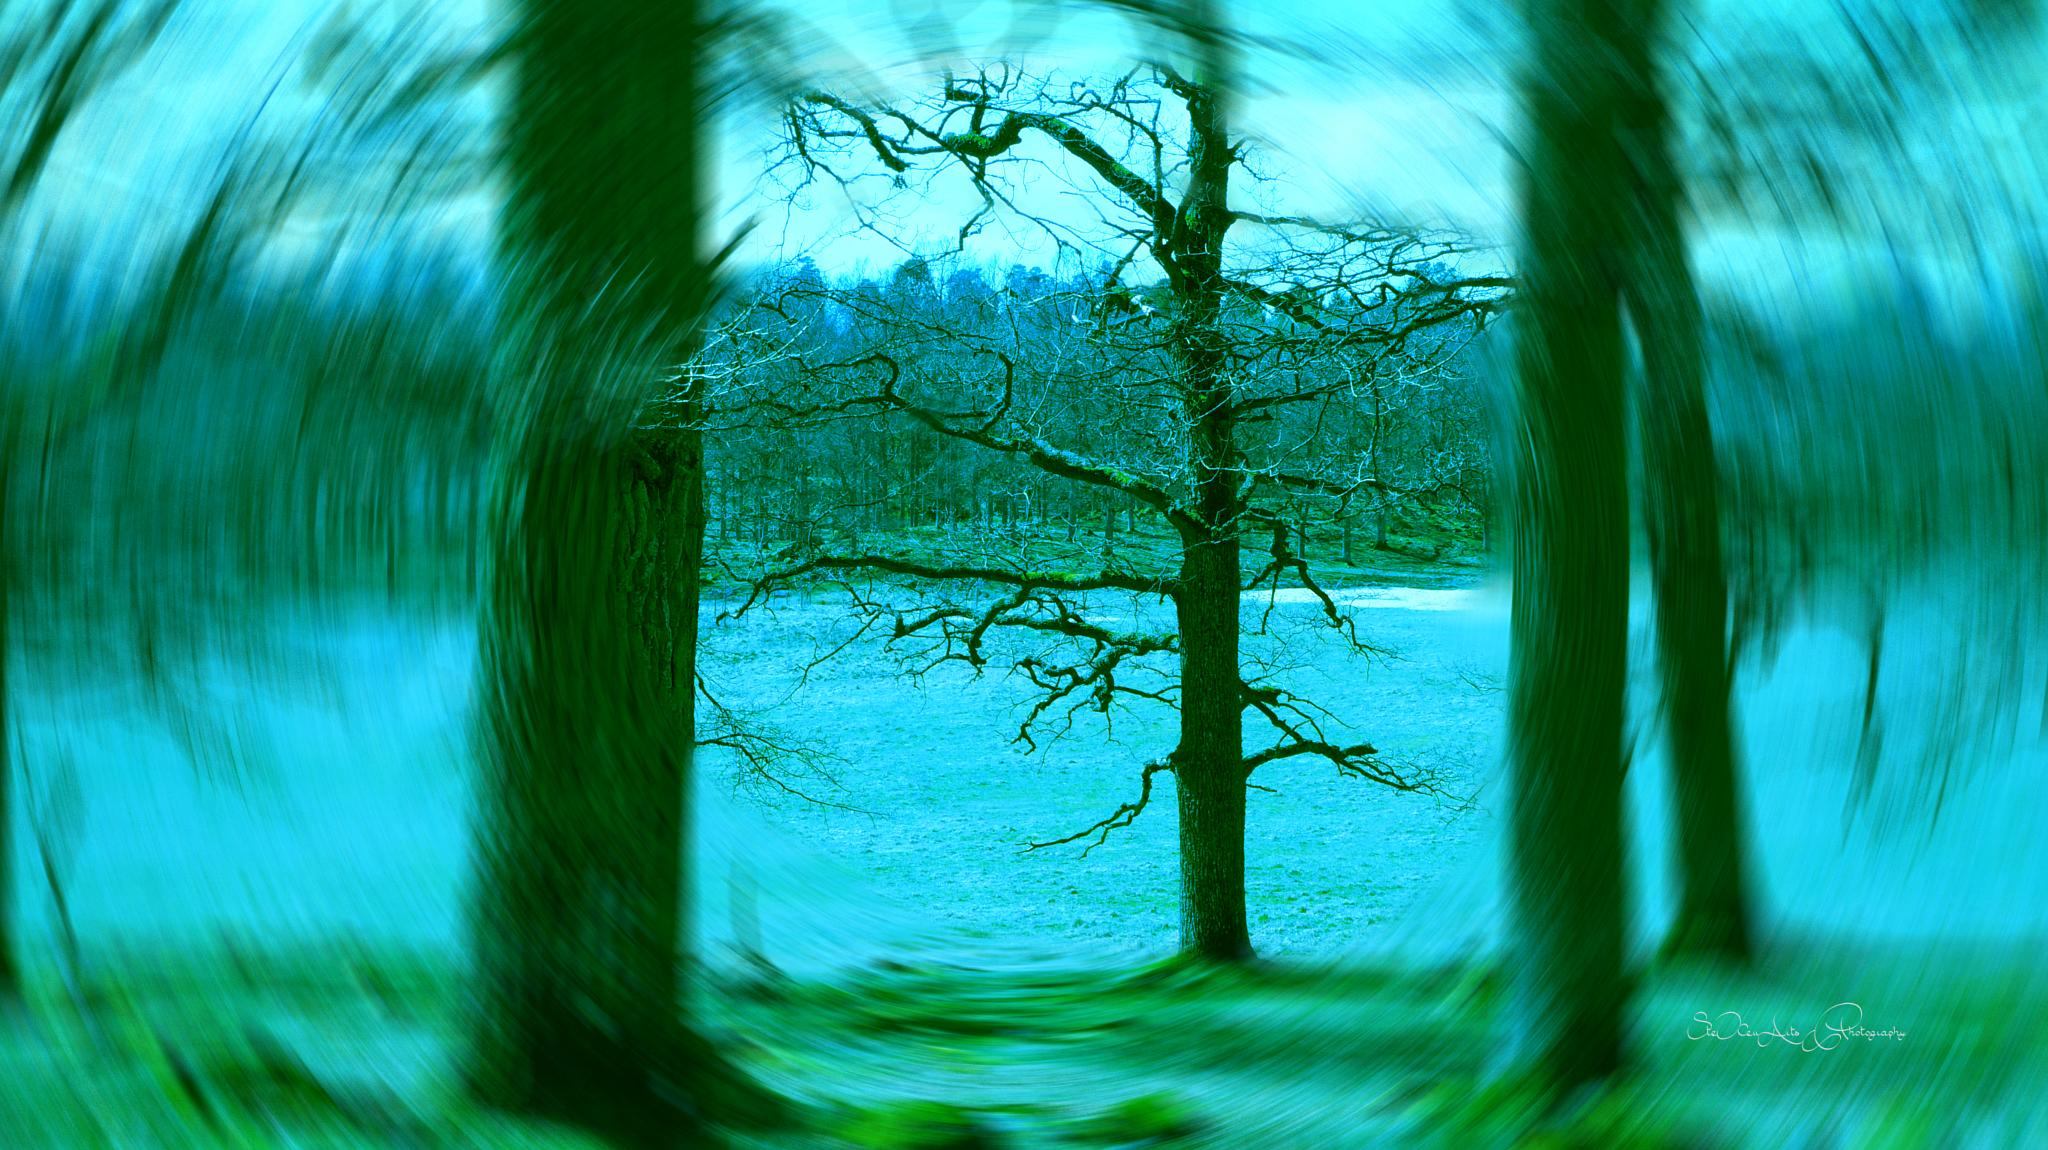 green vision by SteXenArts Photography